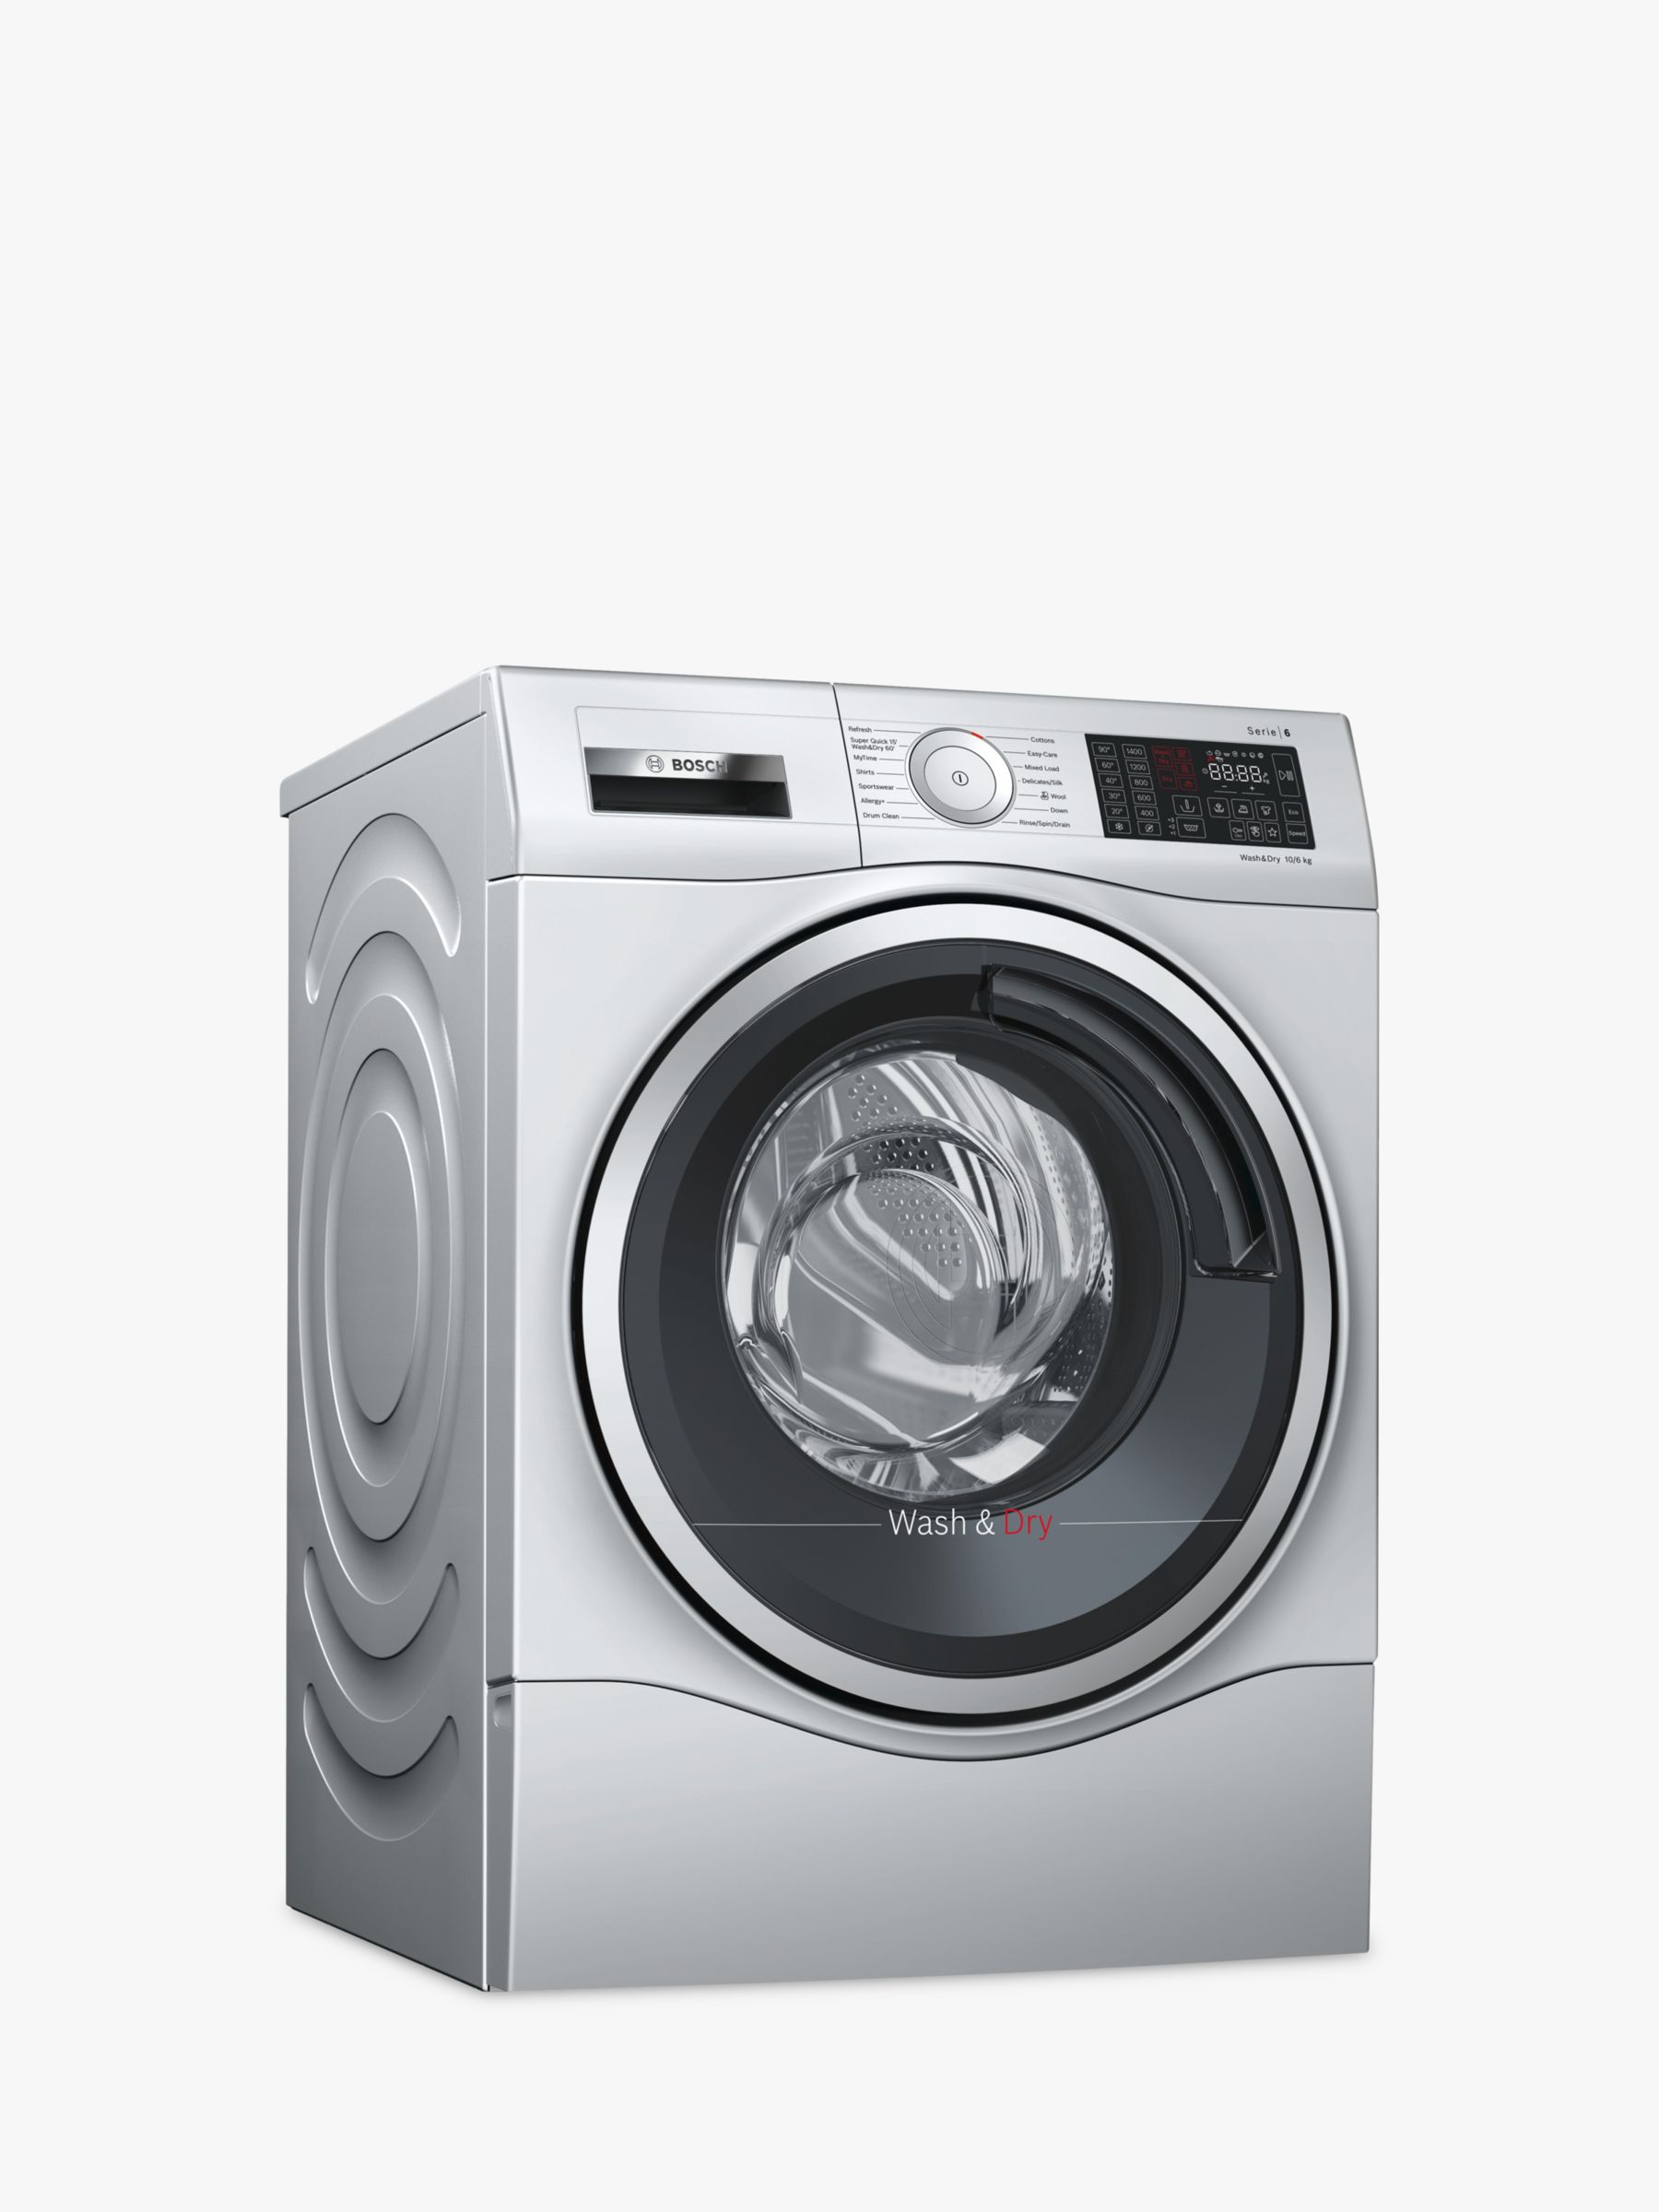 Bosch Bosch WDU28568GB Freestanding Washer Dryer, 10kg Wash/6kg Dry Load, A Energy Rating, 1400rpm Spin, Stainless Steel